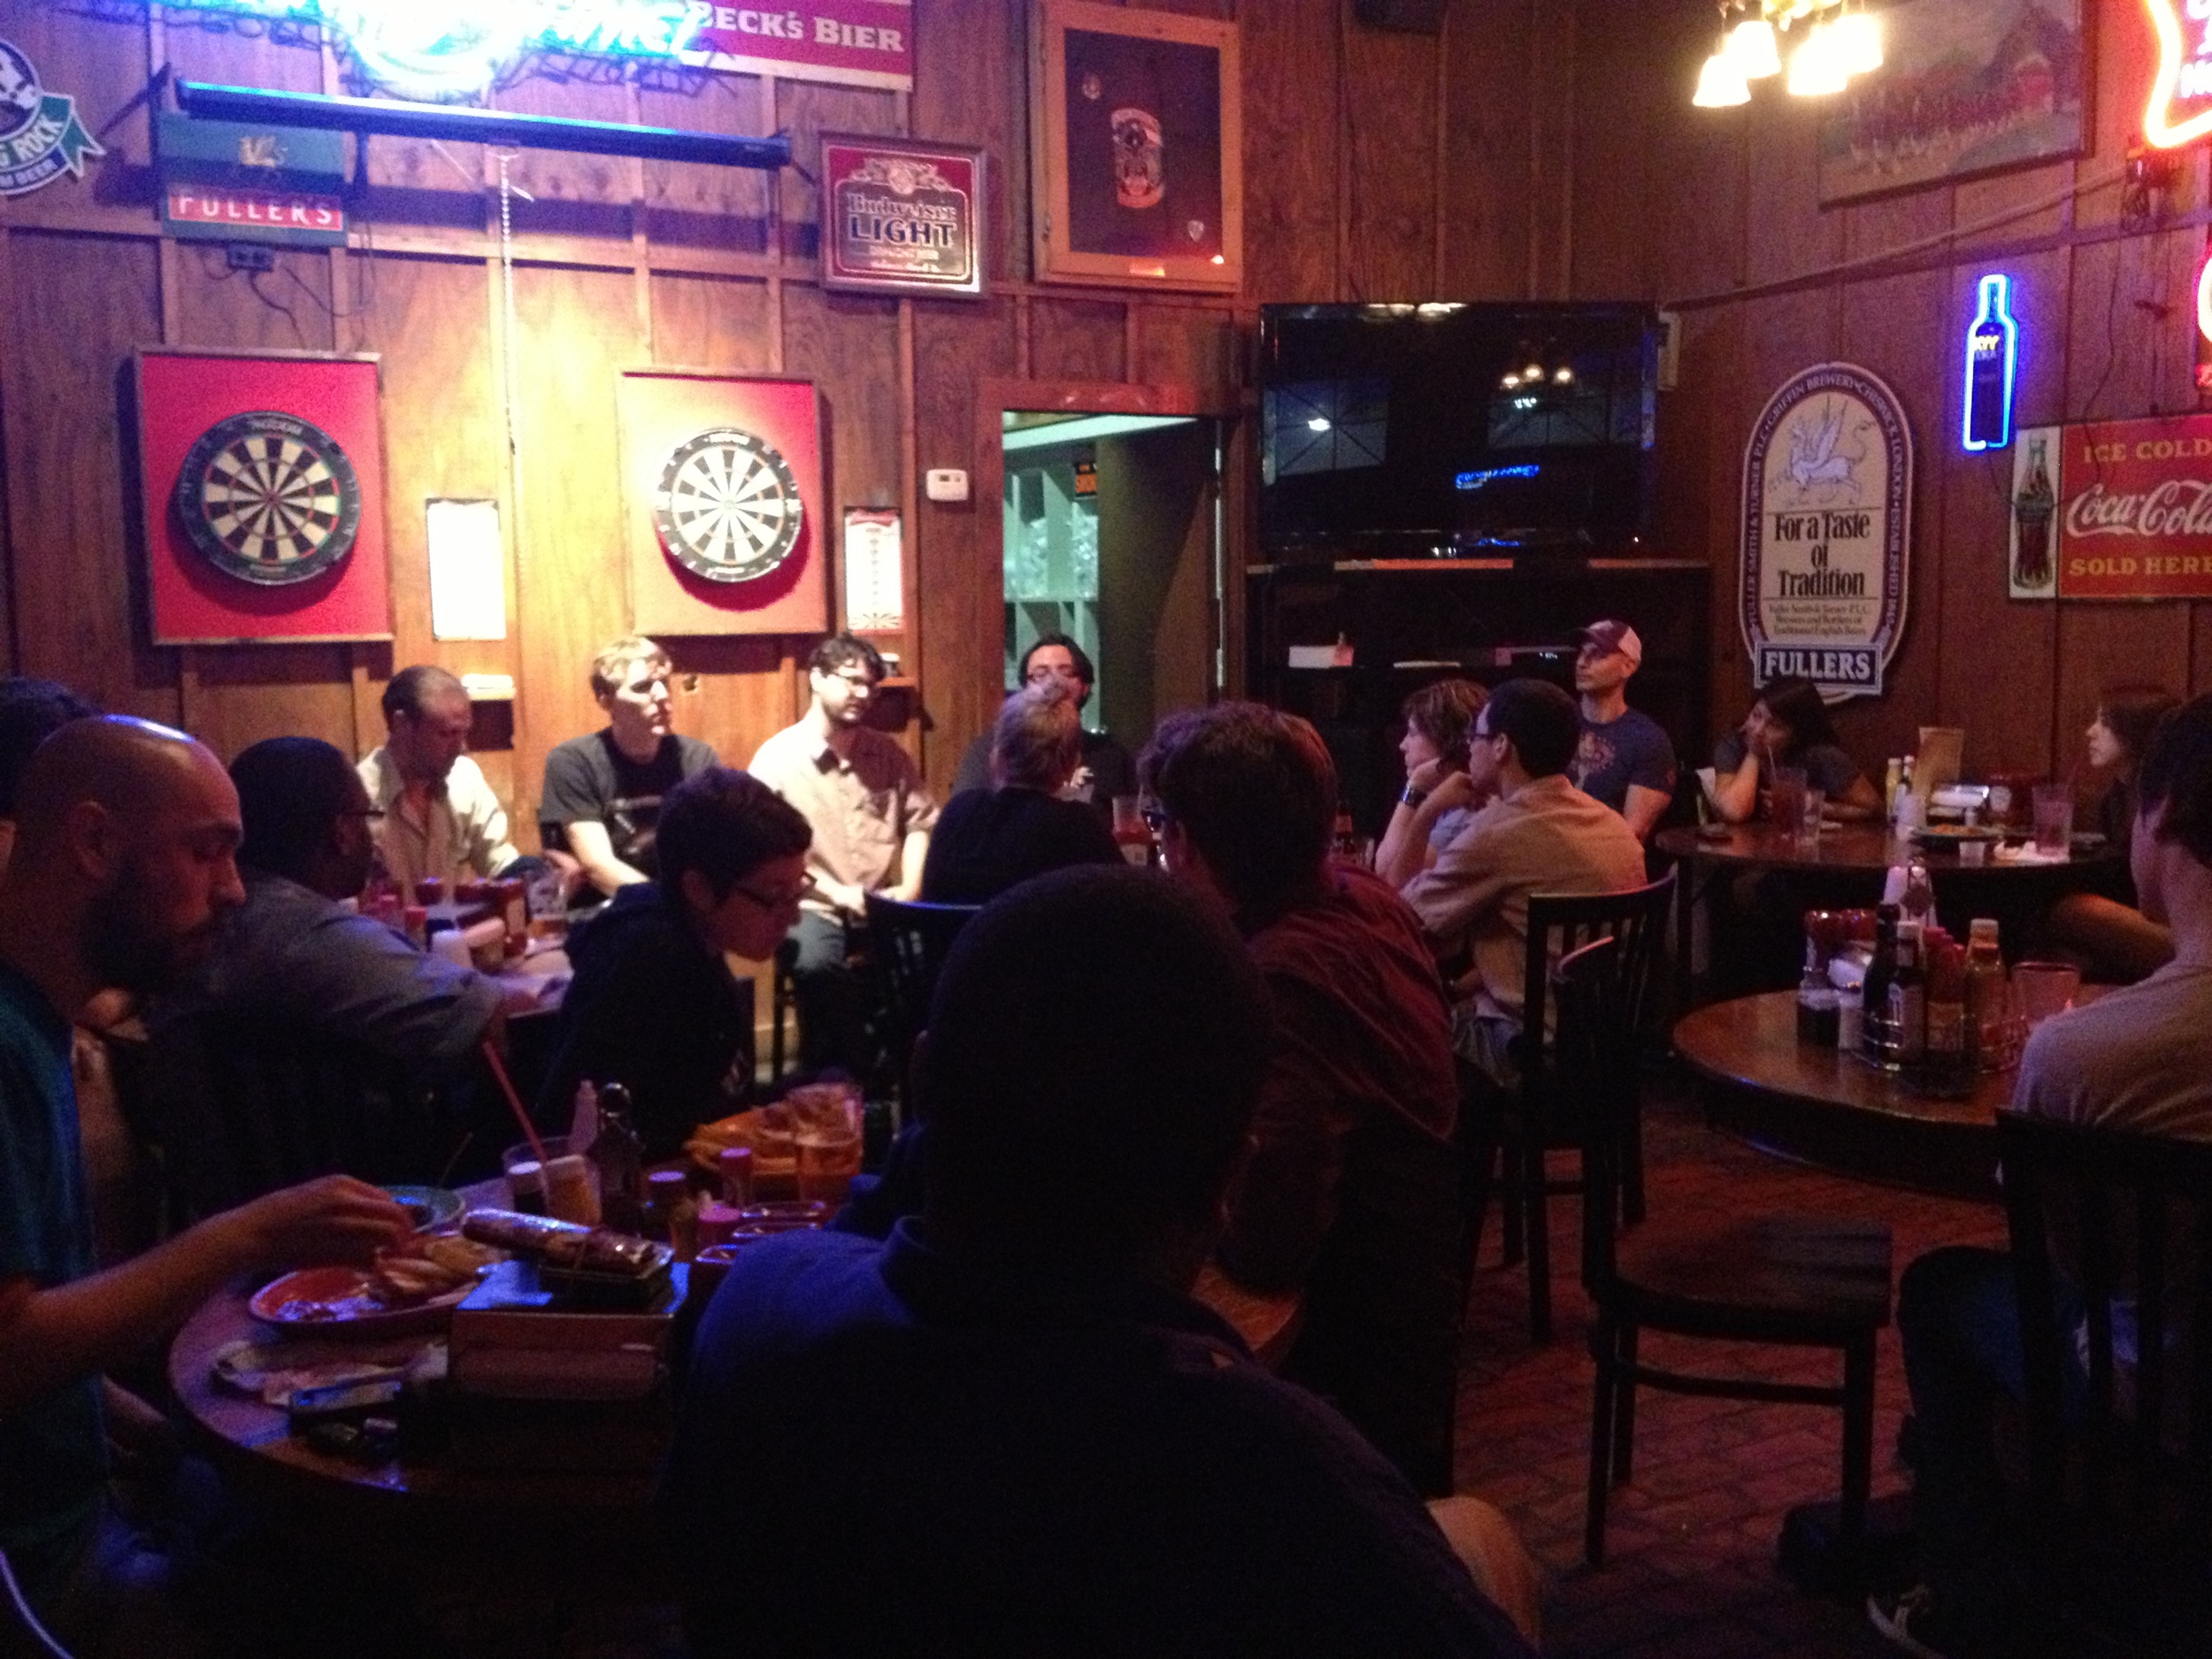 The members of New Puppet Order (seated beneath the dart boards) at Manuel's Tavern.